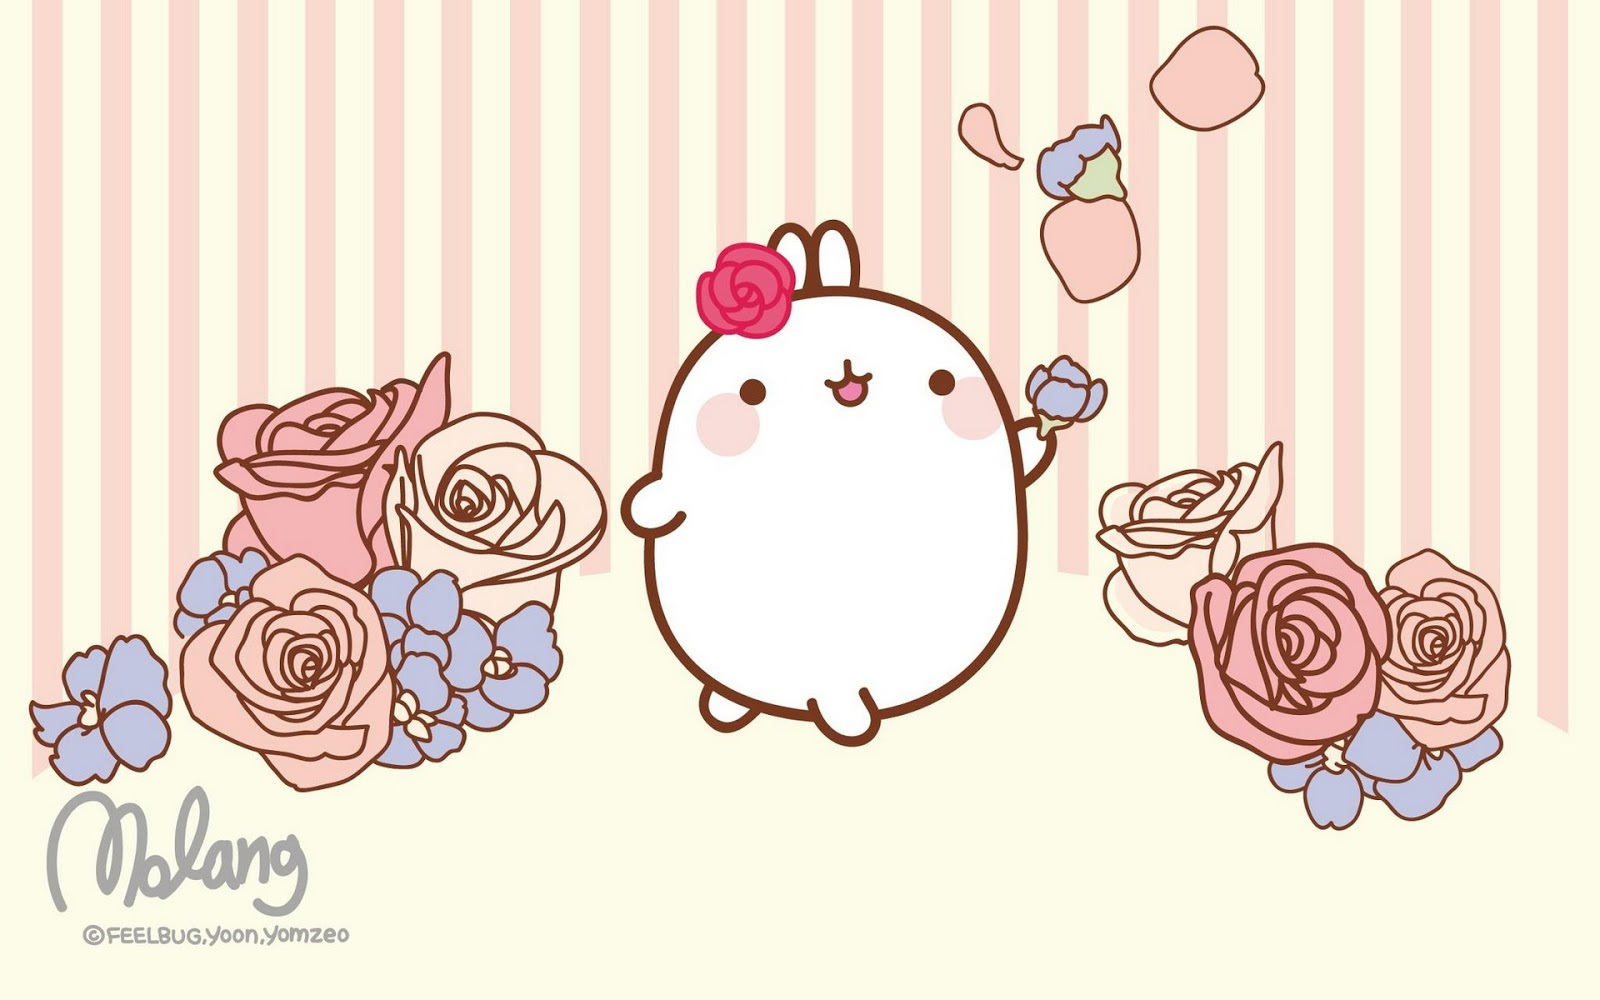 Cute Wallpapers For Iphone 5s Molang Wallpapers Reino Kawaii